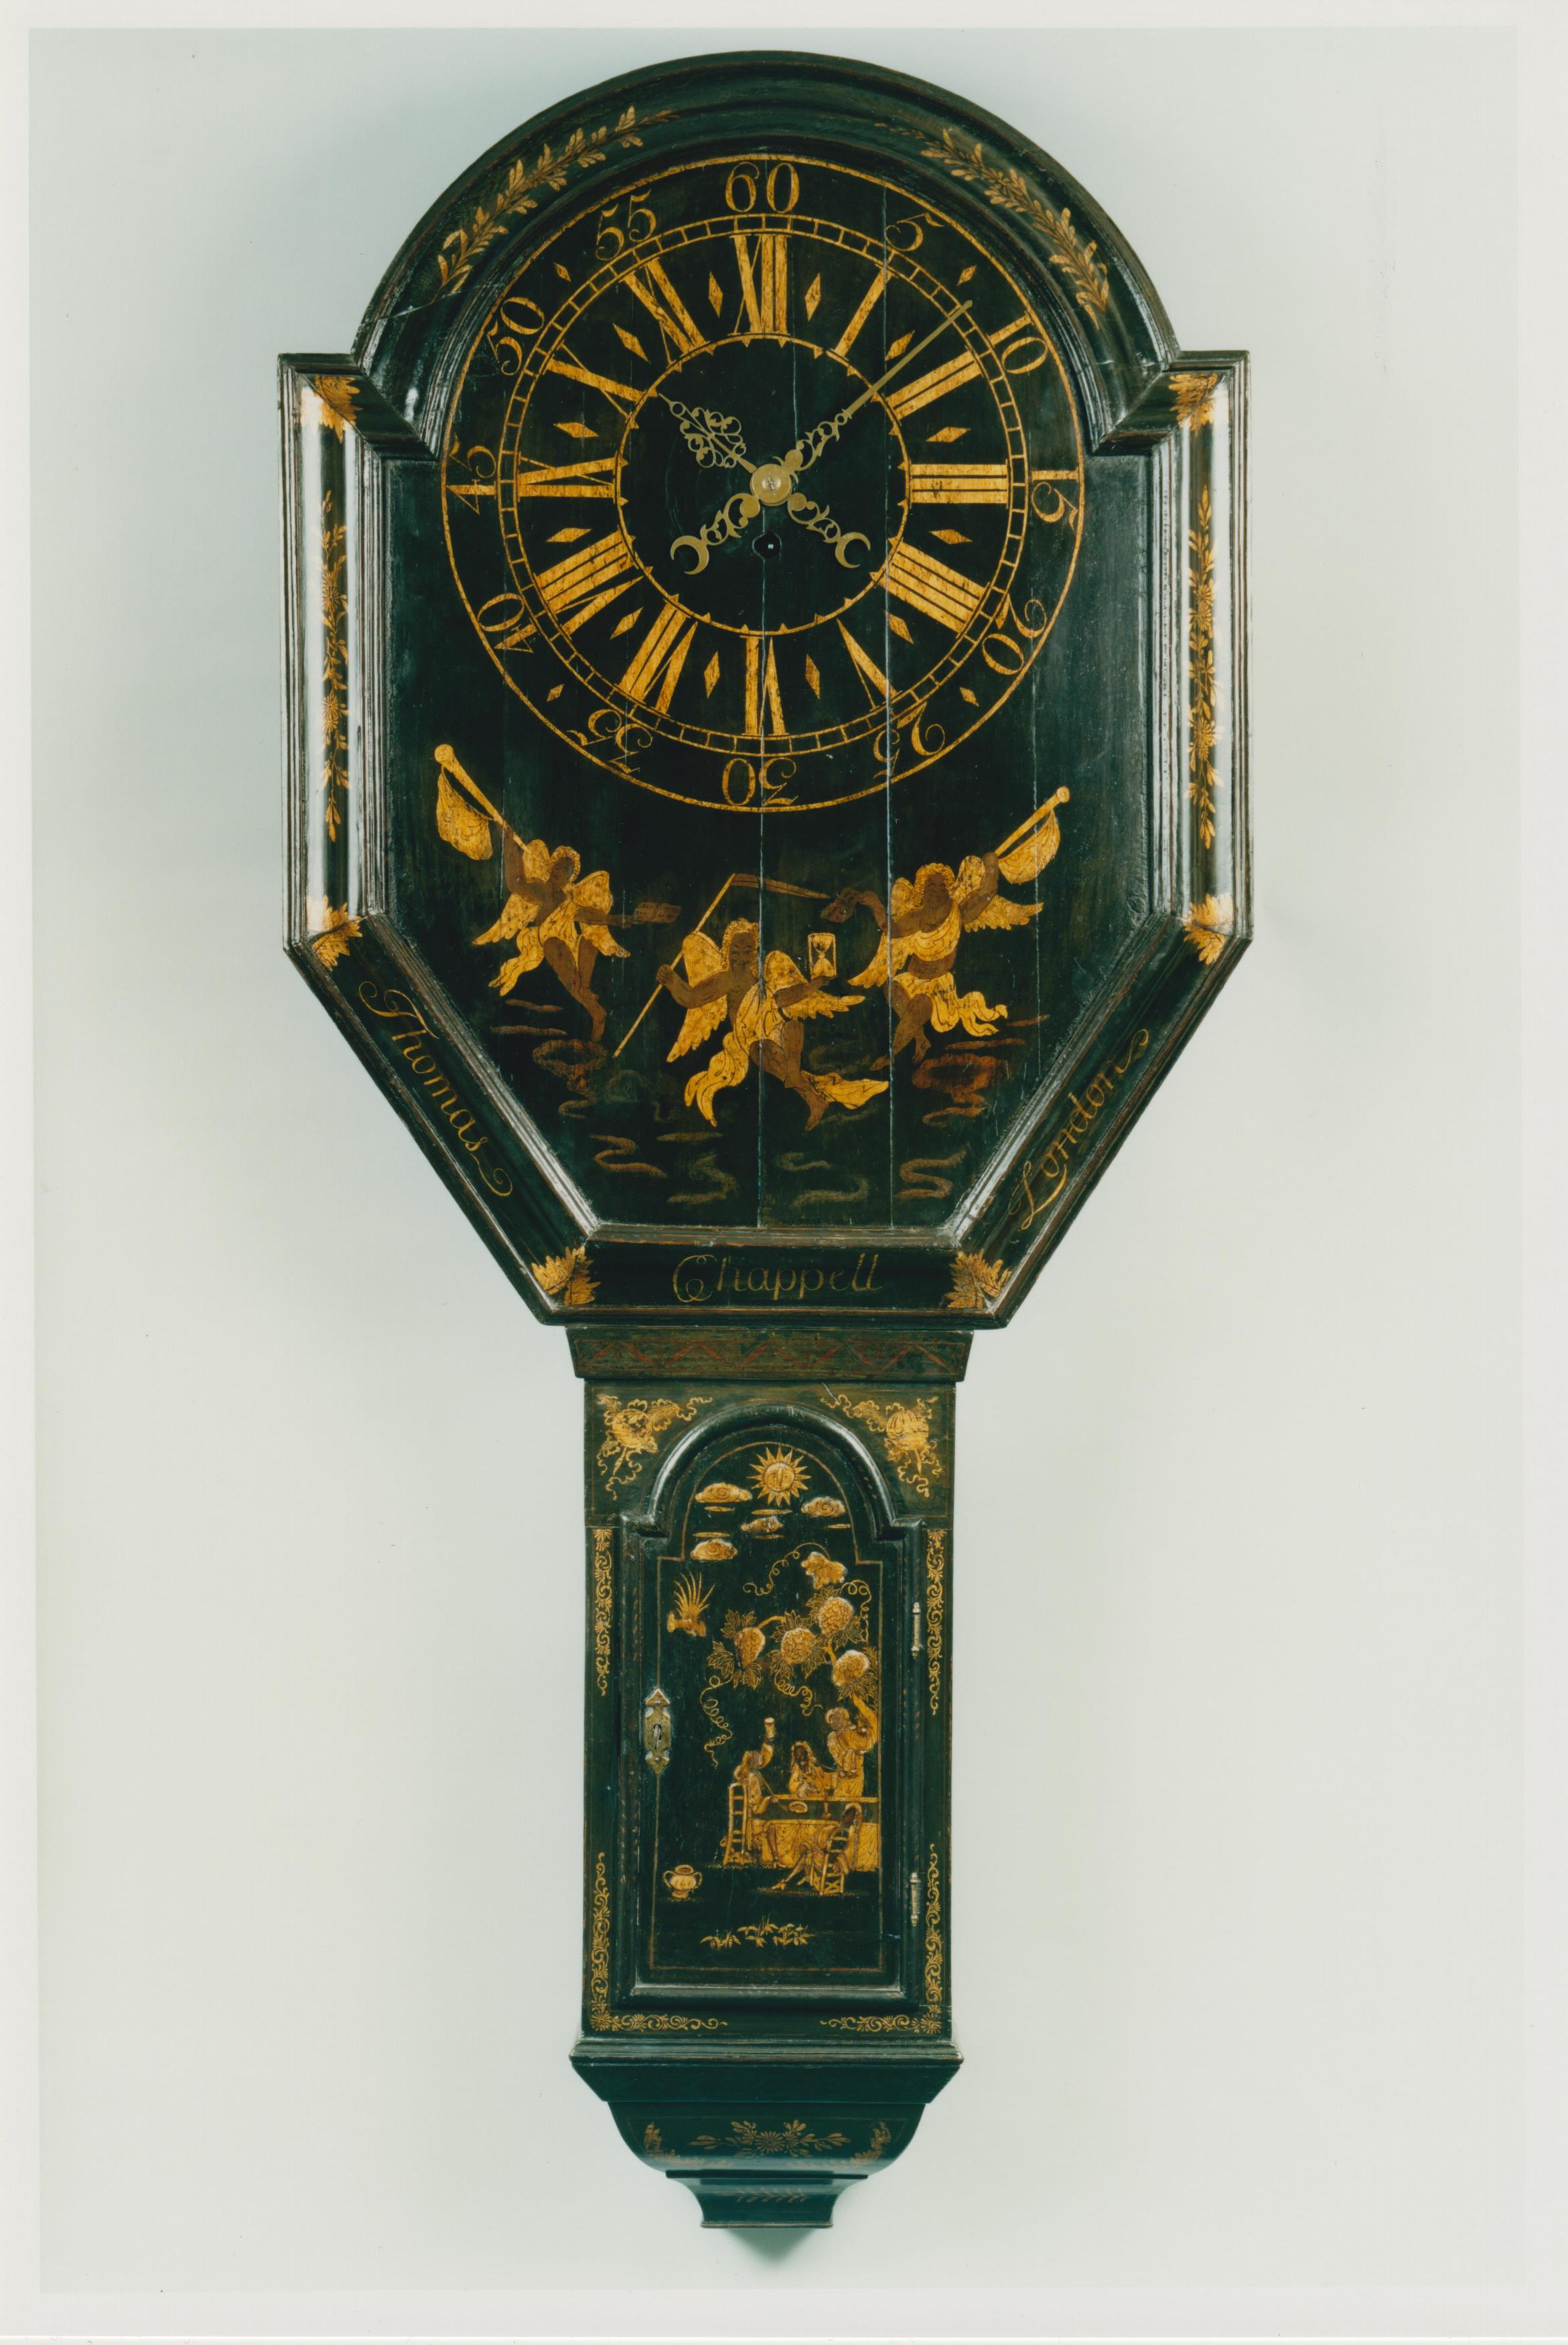 Wierd Clocks Tompion And The Golden Age English Clocks 1675 1725 At